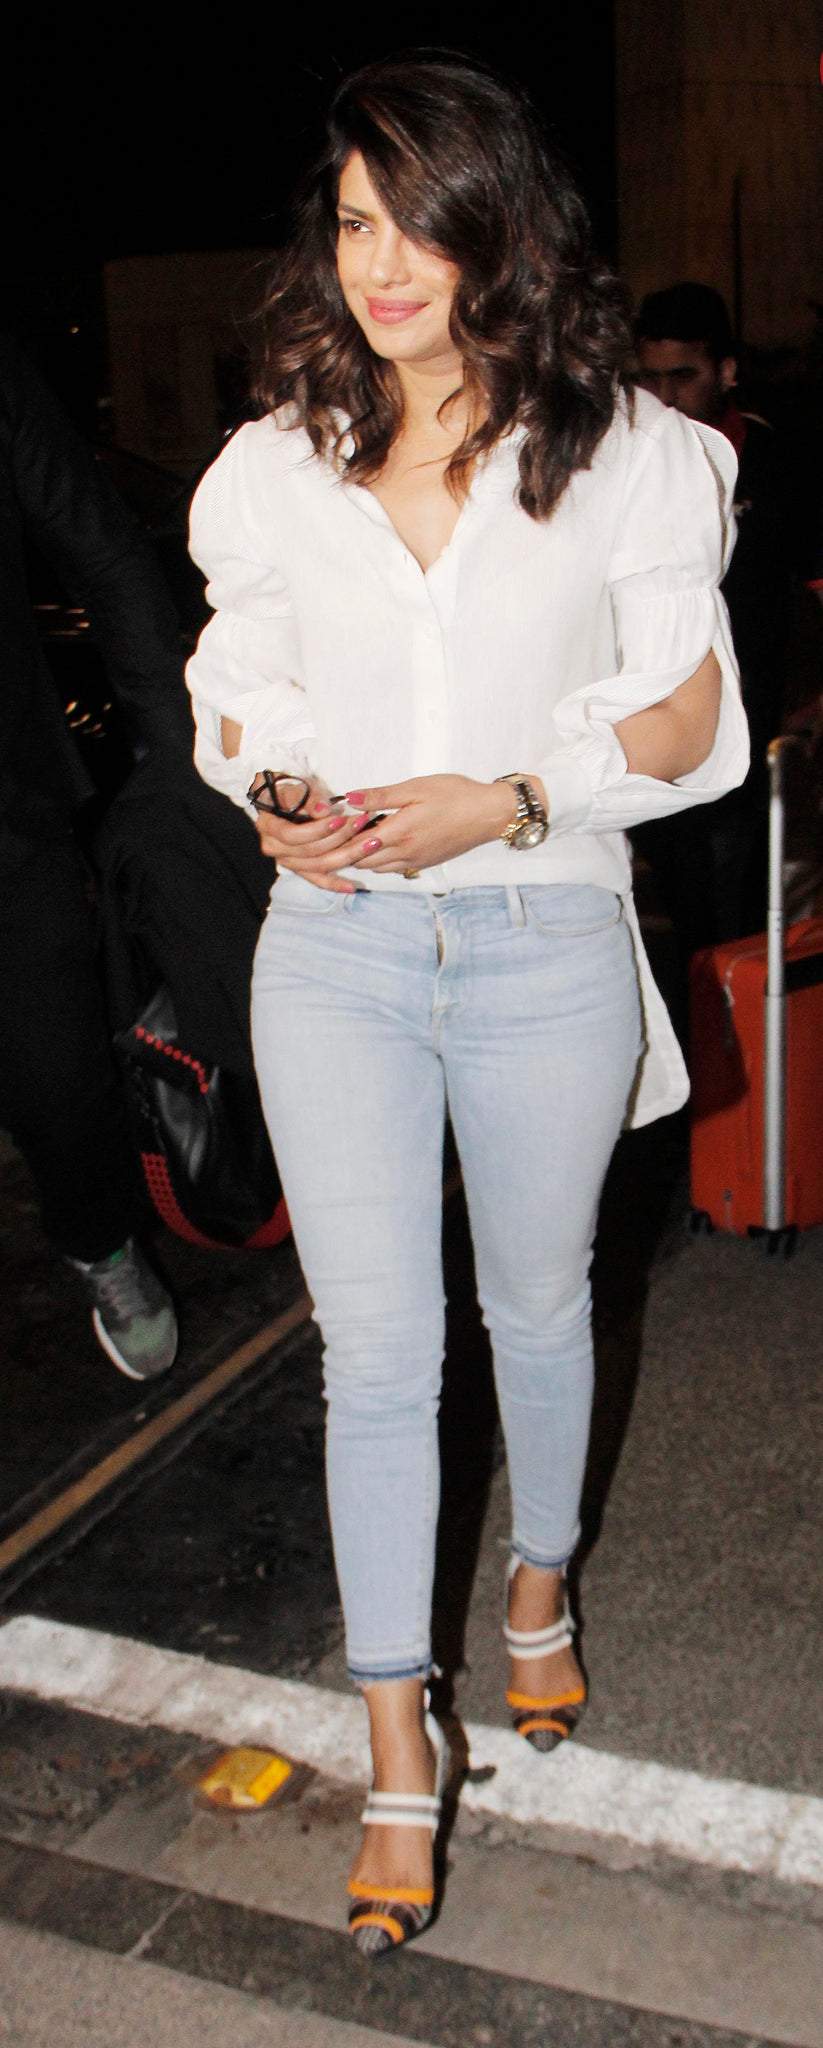 """Desi Girl"" aka Priyanka Chopra was clicked at the city airport by the shutterbugs last night."